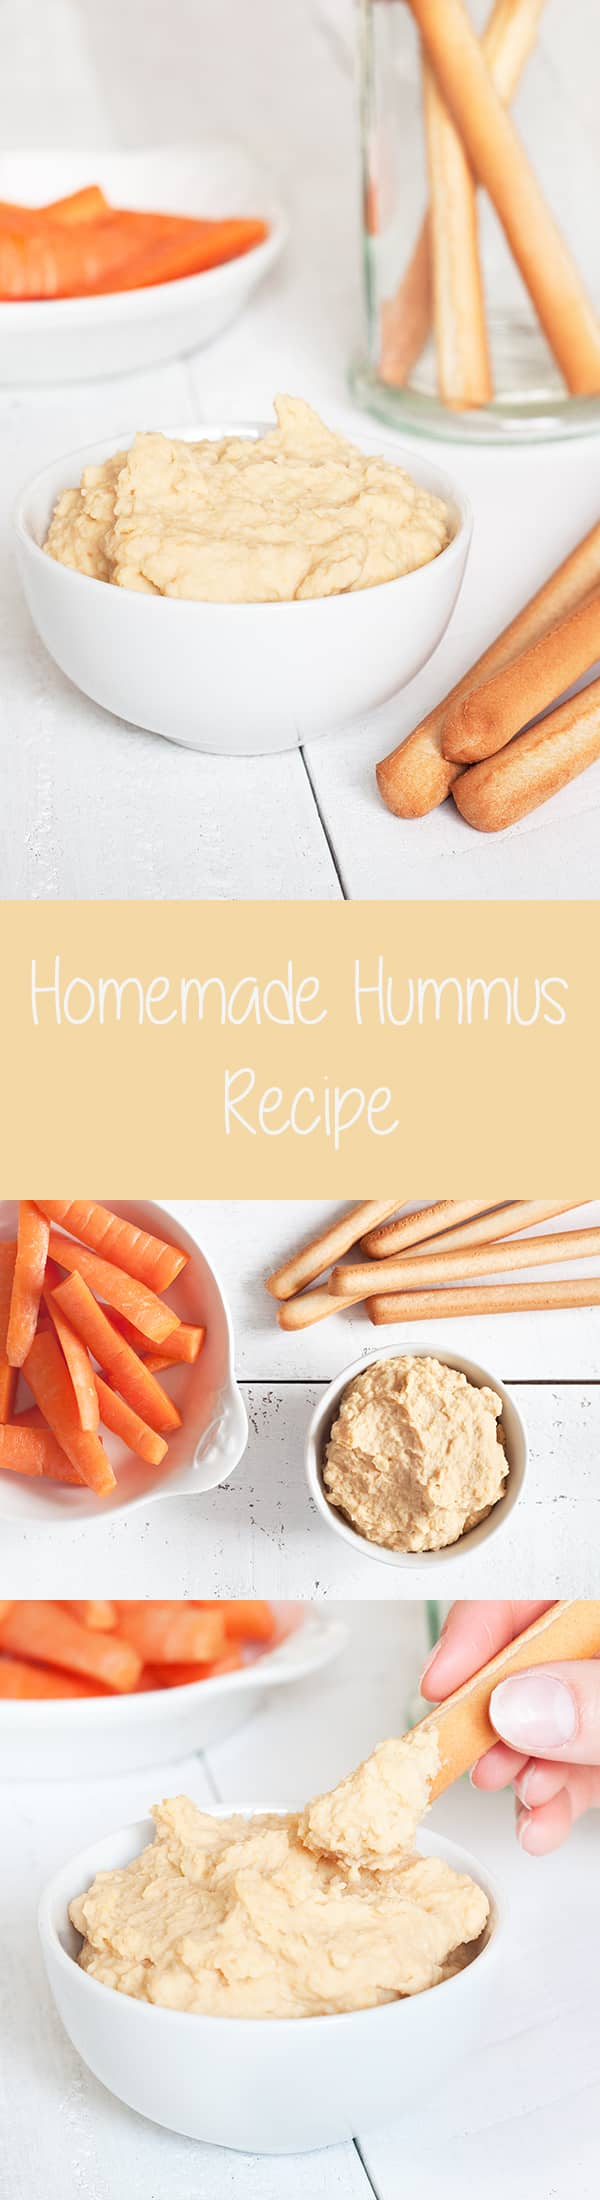 homemade-hummus-recipe-1